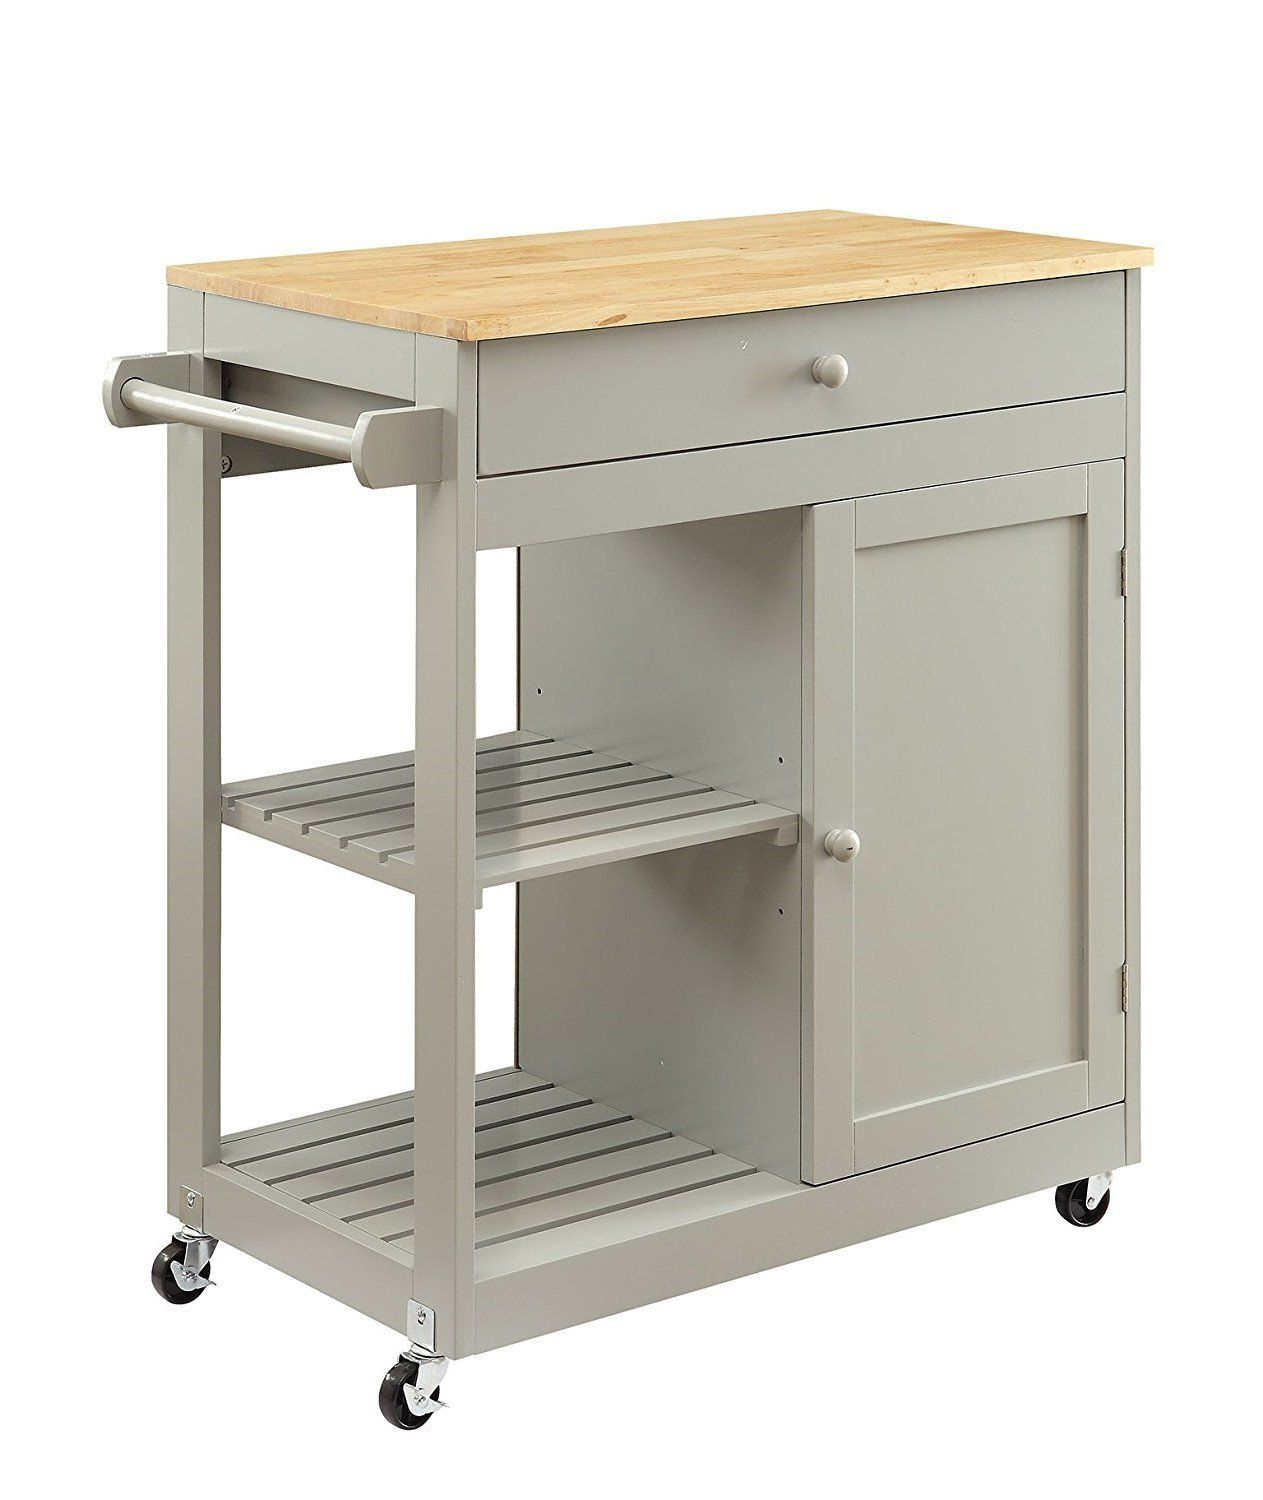 Küche Grau Klein Homelife Nashville Collection Wooden Grey Kitchen Island Cart On